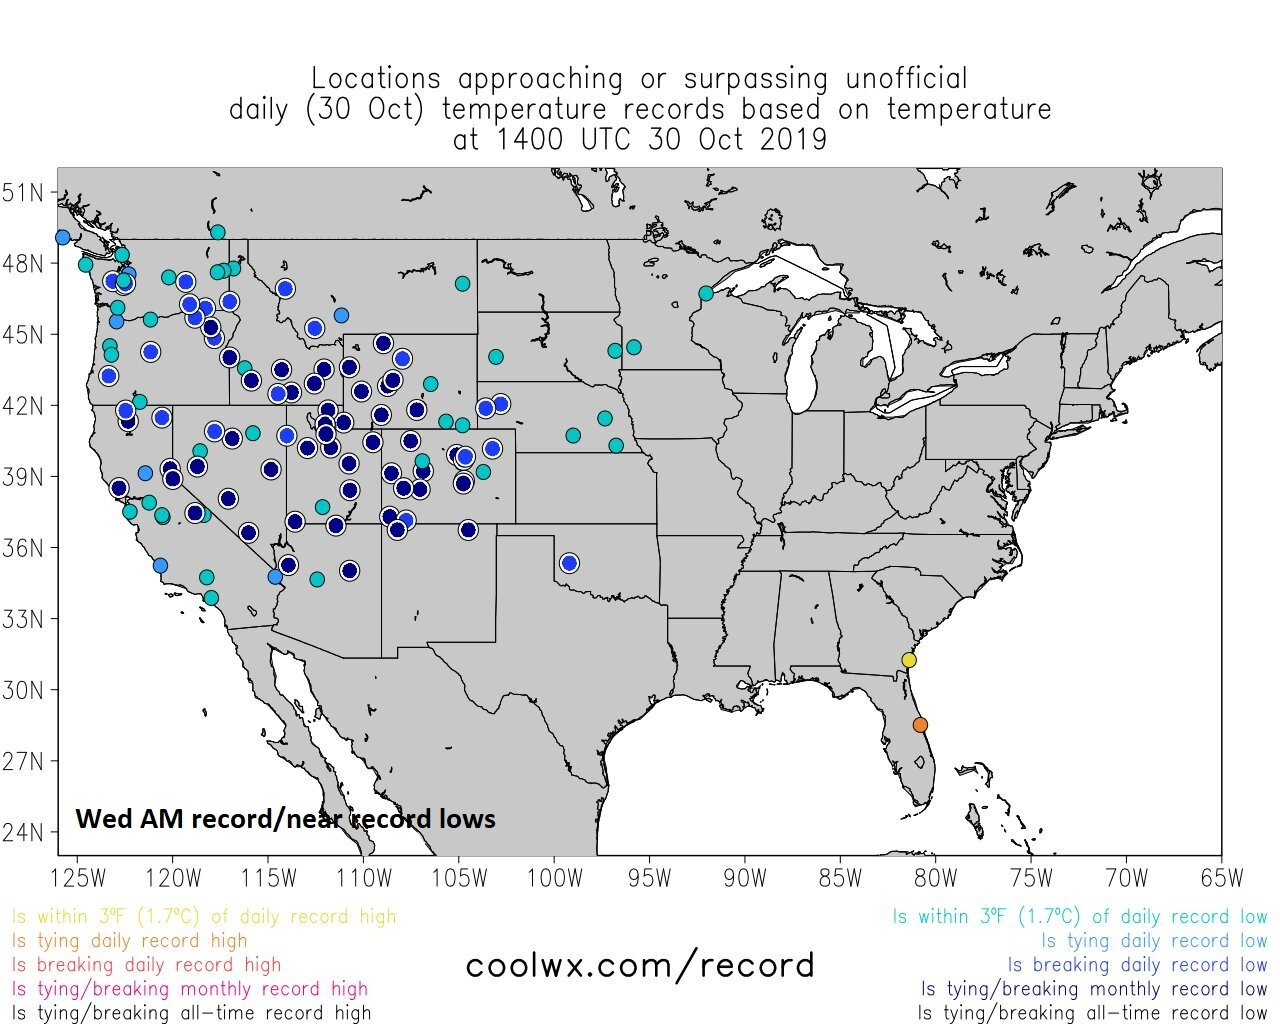 Record or near record lows have been prevalent during the past few days across the western and central US with several sites recording their lowest temperatures ever for October (black circles); courtesy NOAA, coolwx.com